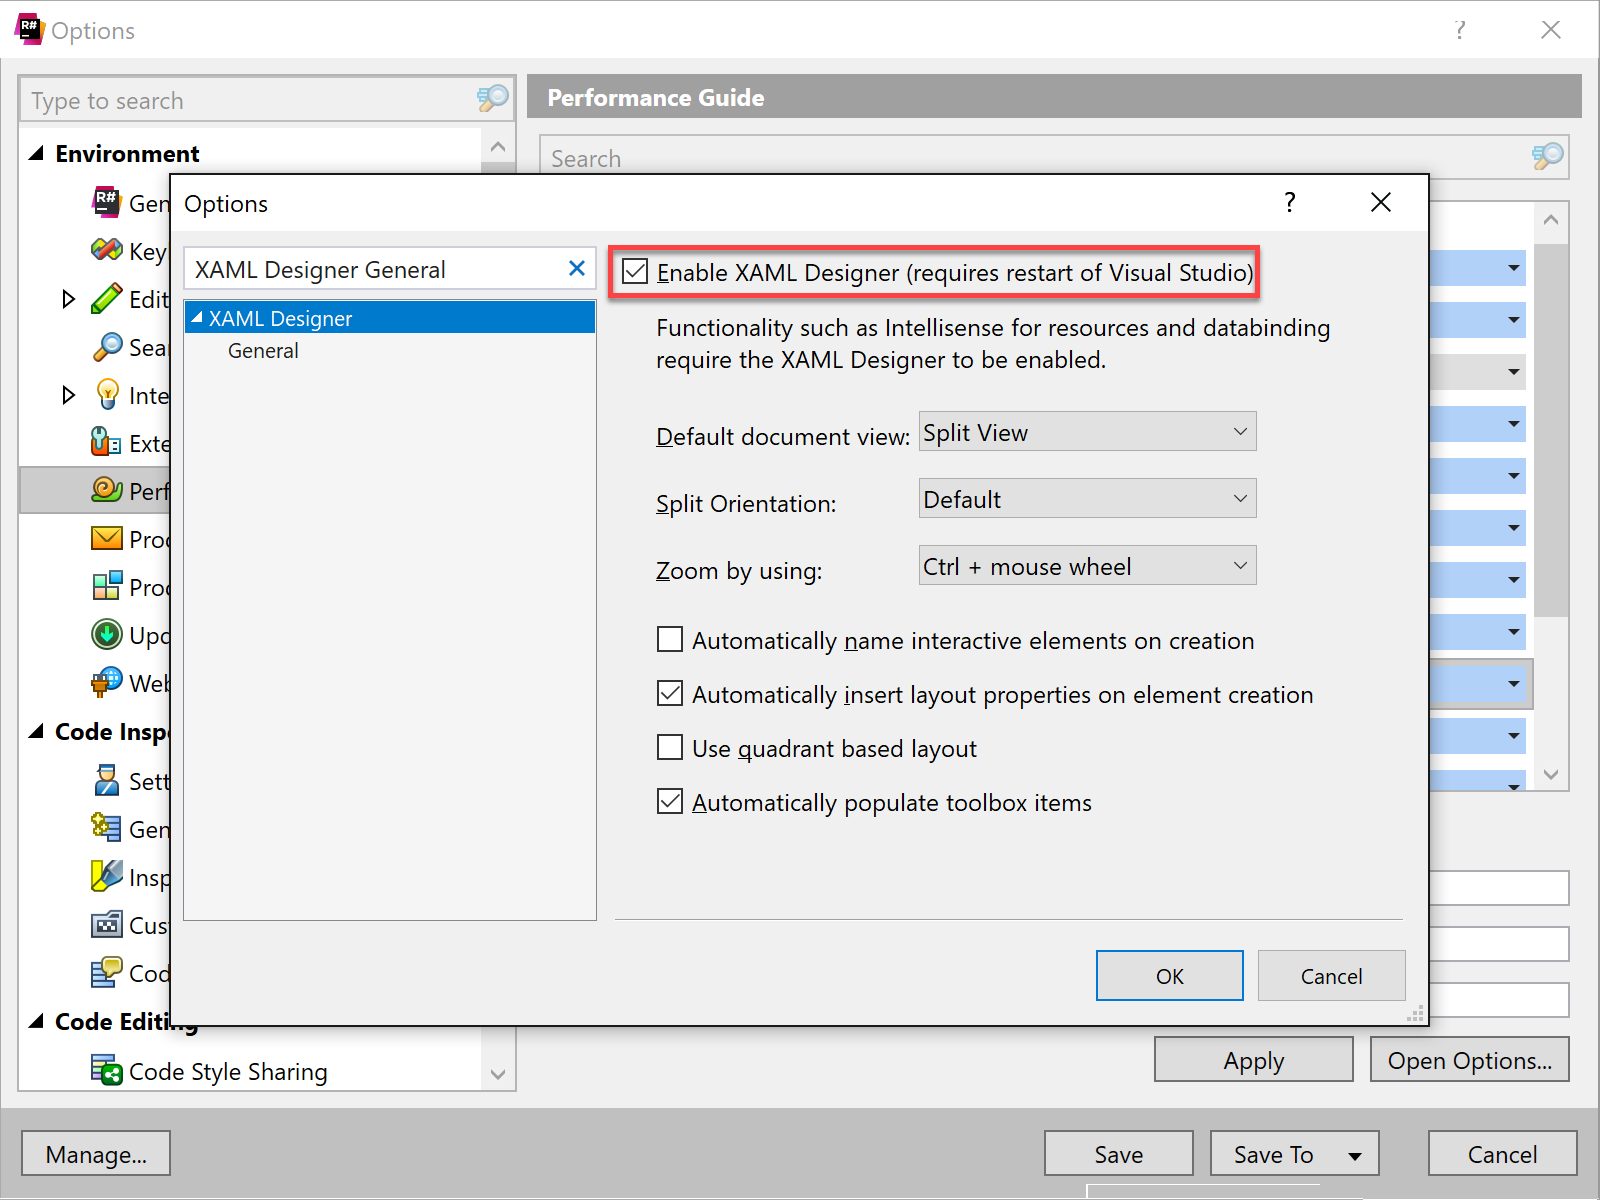 XAML Designer is enabled in in Visual Studio options